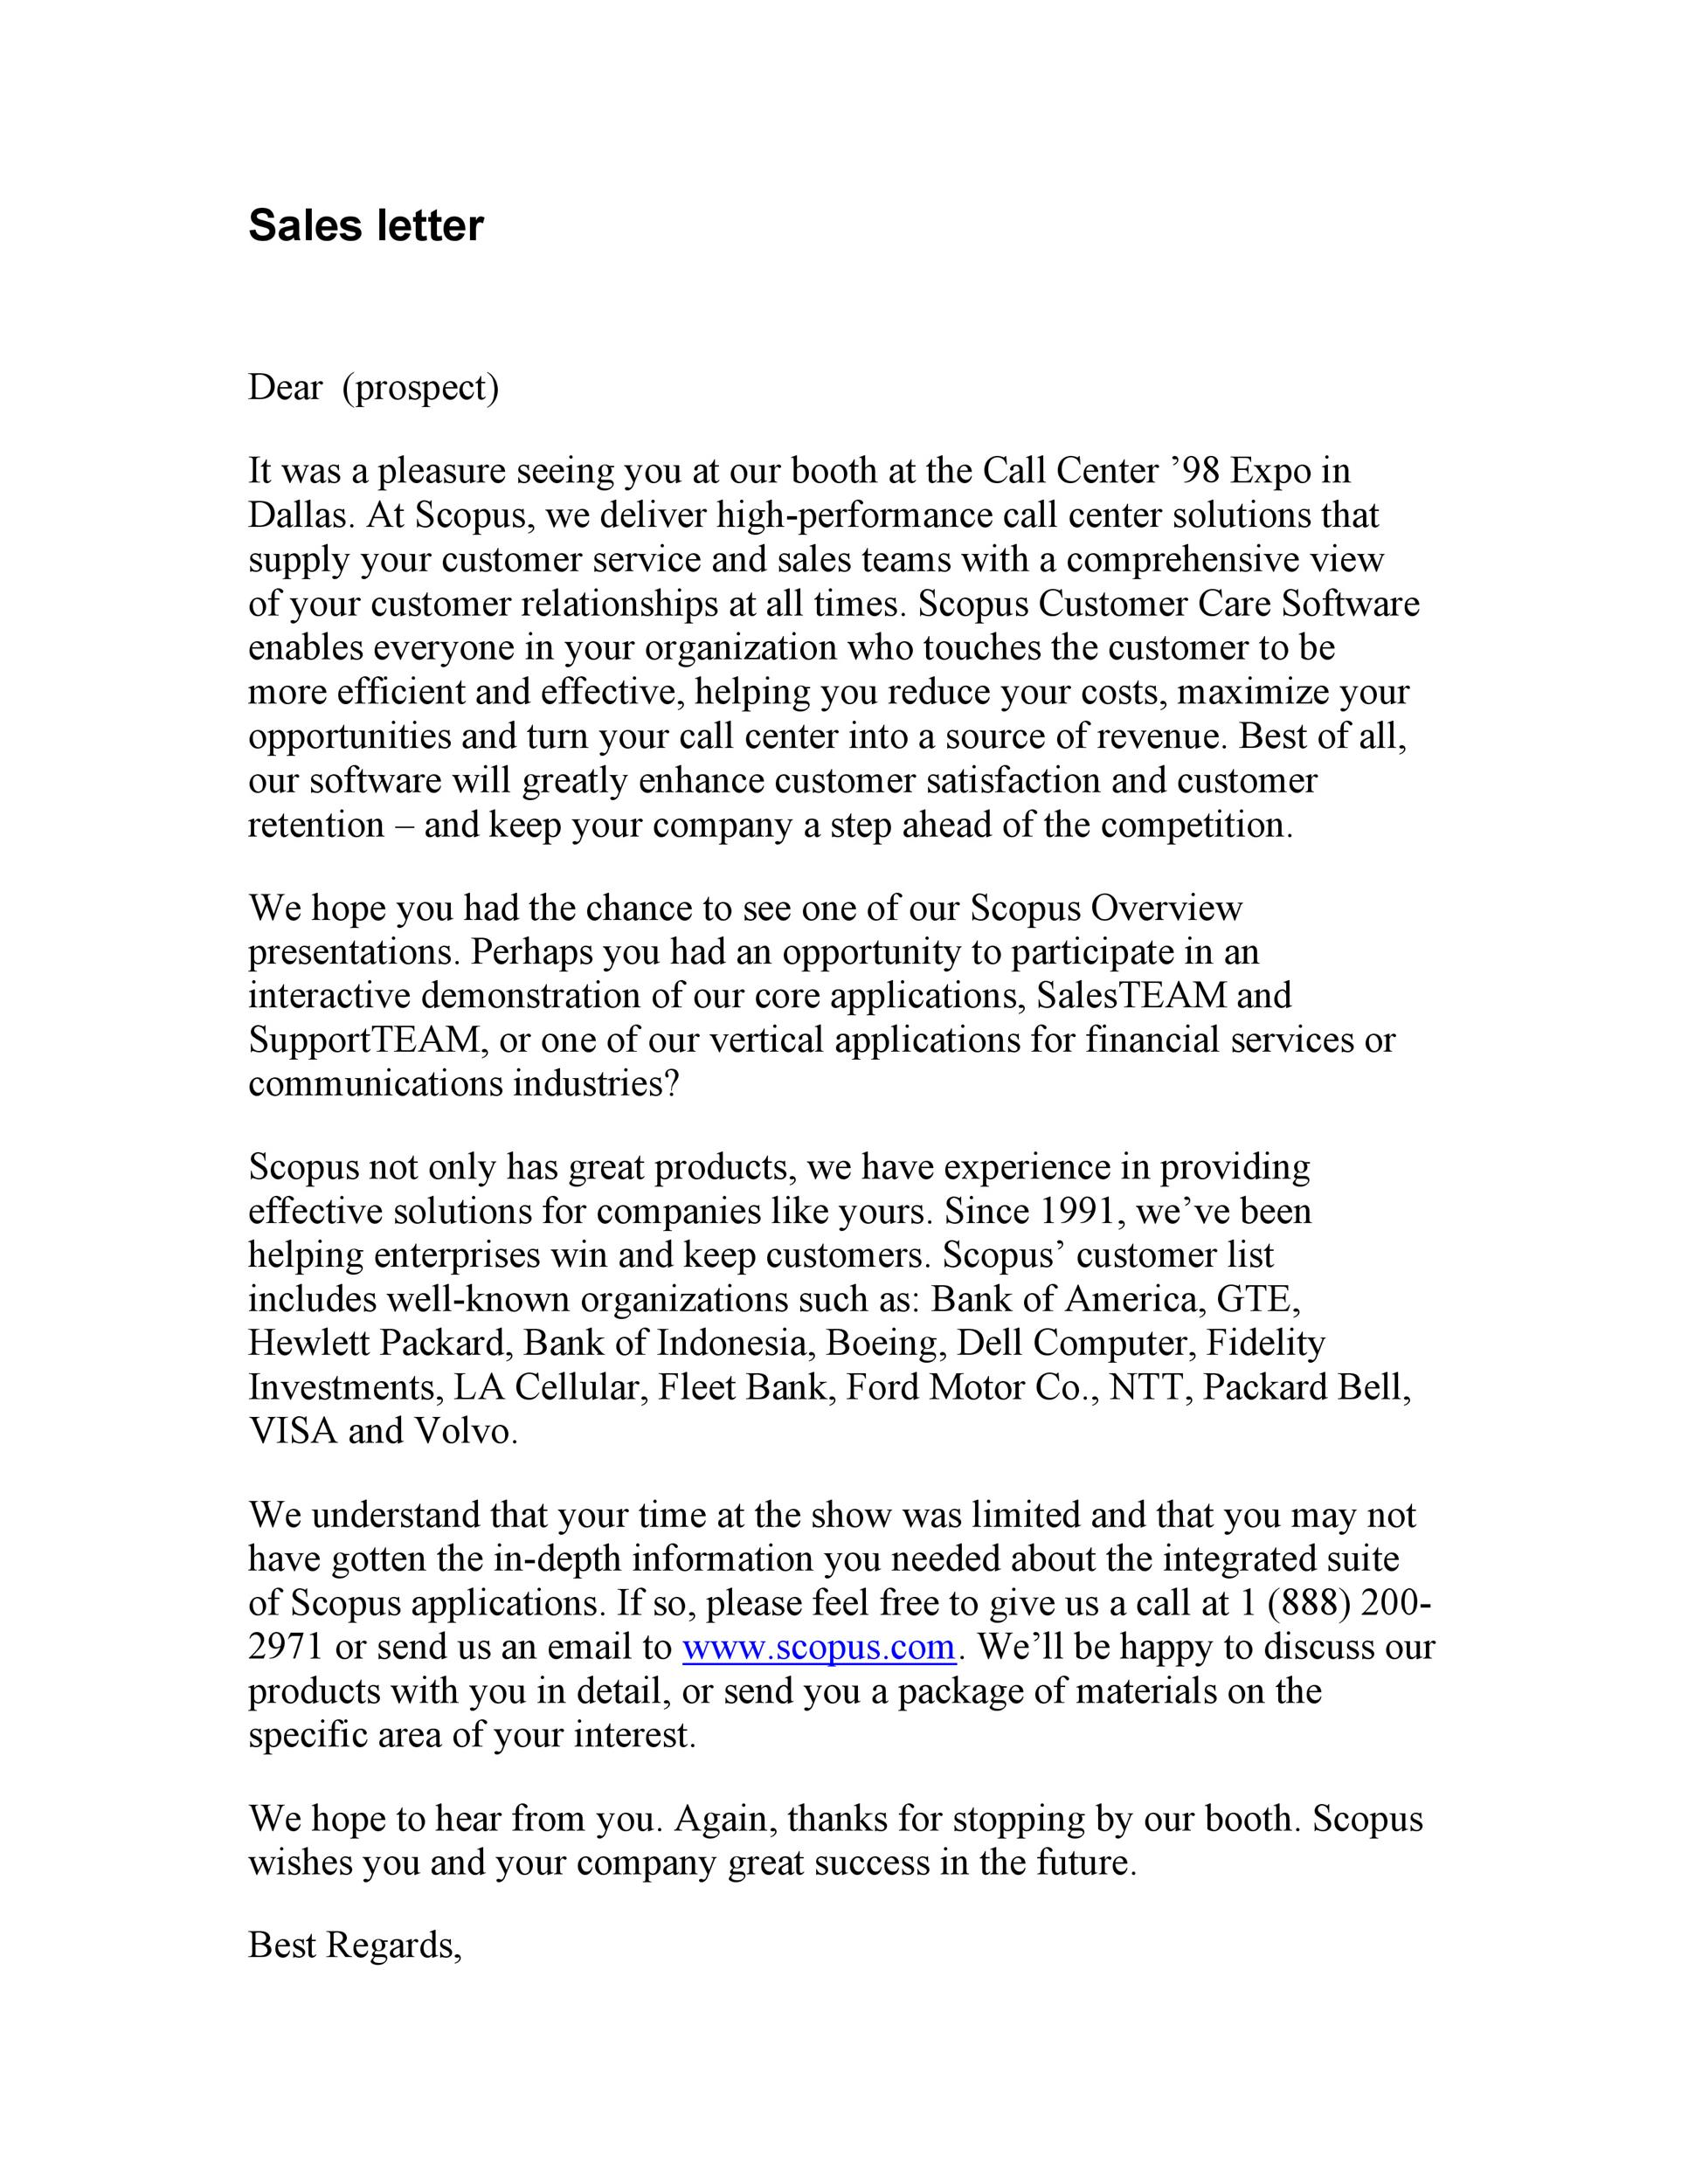 Free sales letter template 25